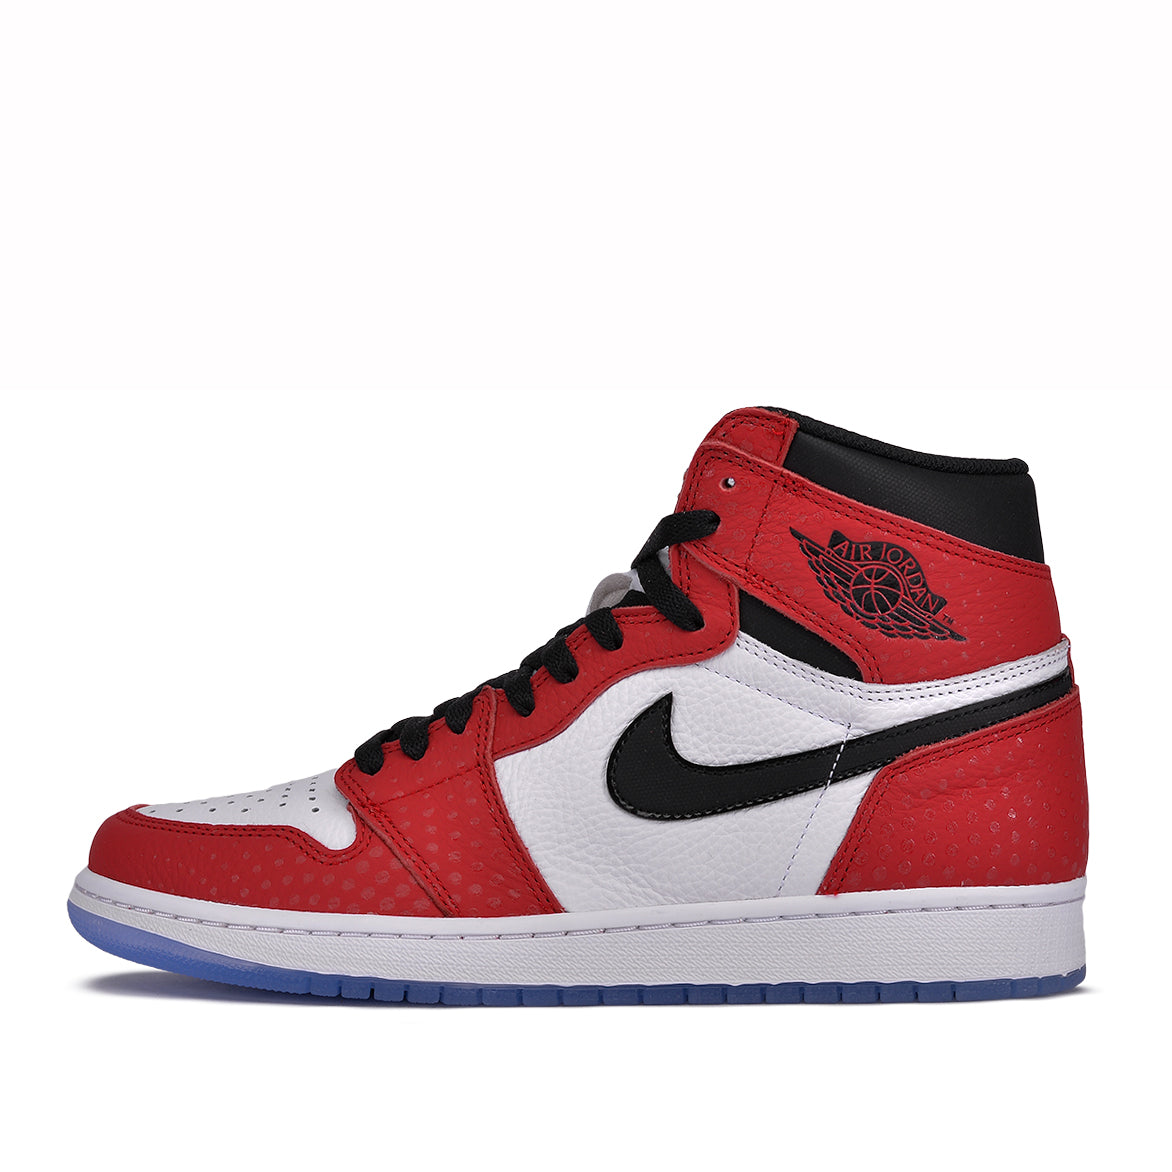 530b239a6b8 AIR JORDAN 1 RETRO HIGH OG